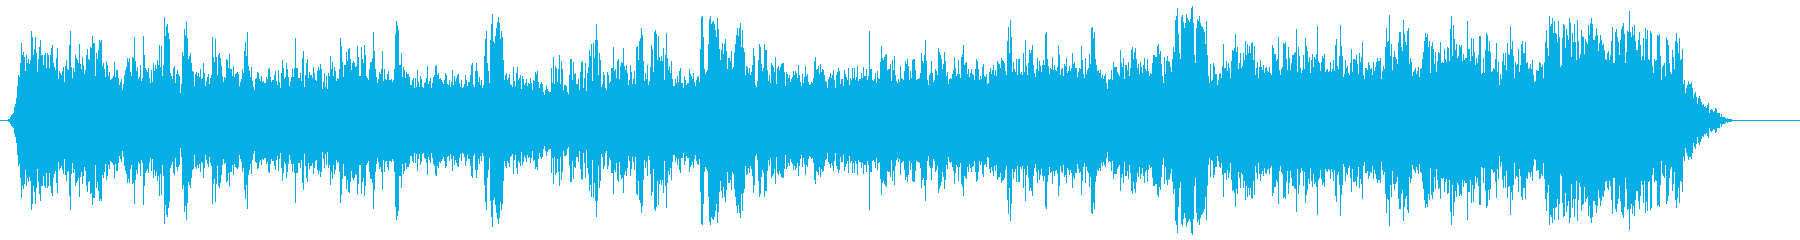 atmosphere of the Ramblas street in Barcelona's reproduced waveform